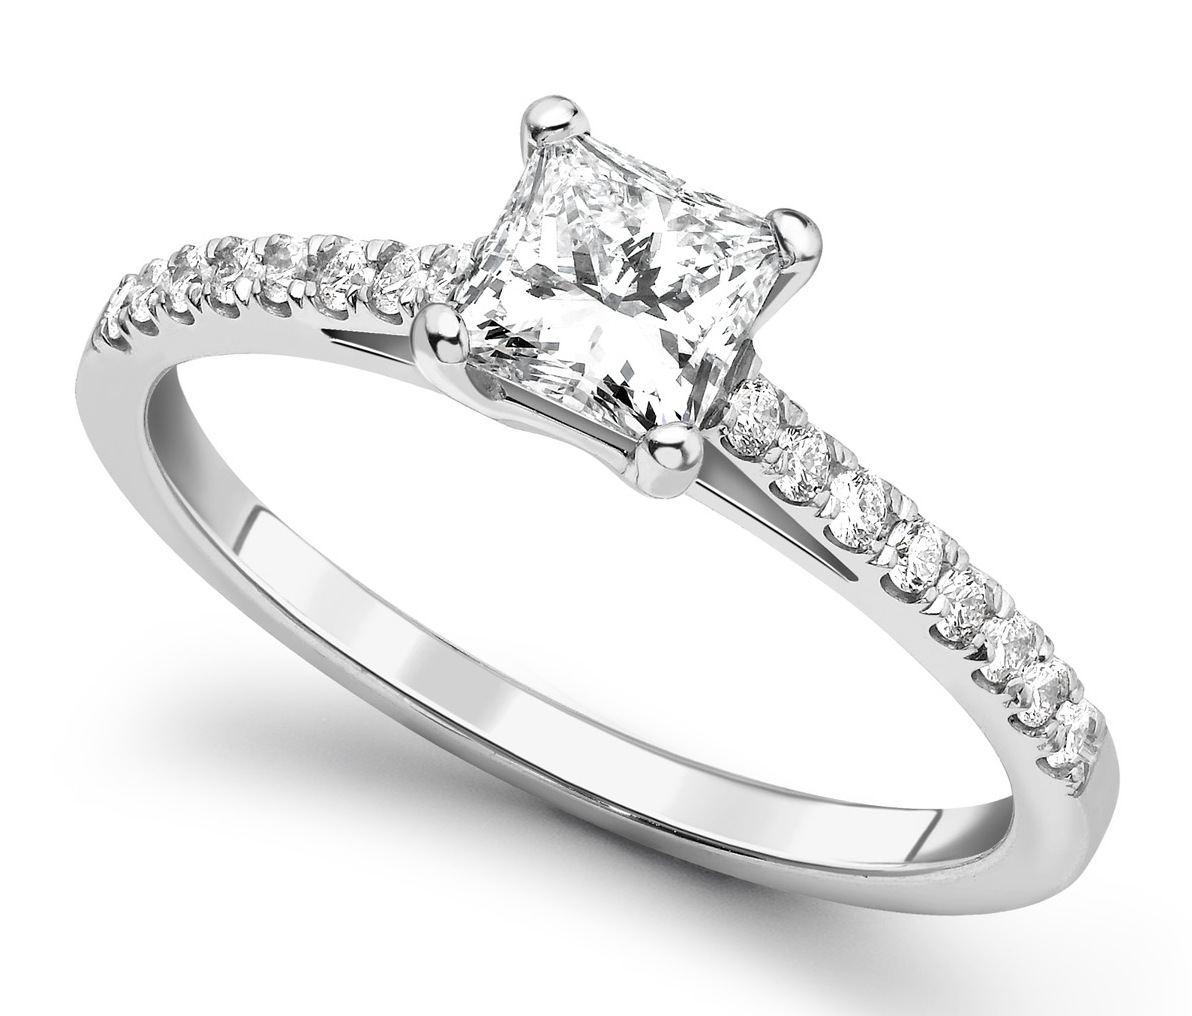 Princess Cut 4 Claw White Gold Diamond Engagement Ring CRC685  Main Image